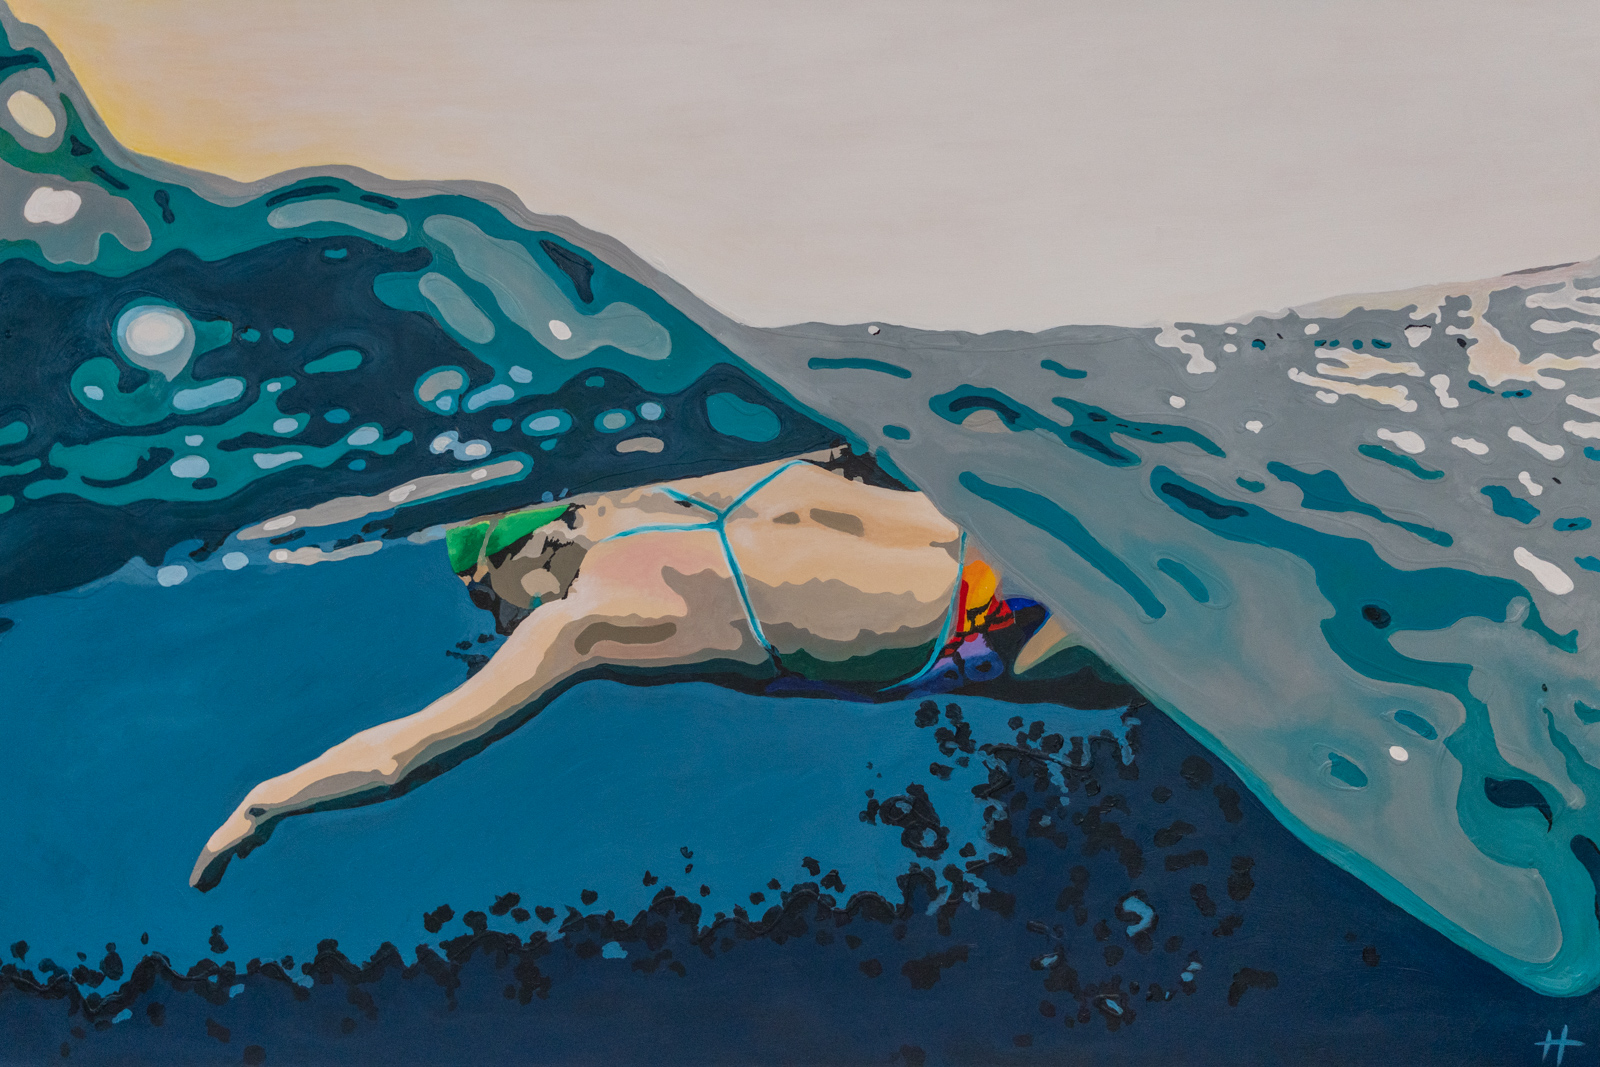 Heather Perry's underwater painting of the swimmer doing the breastroke half in and half out of the water